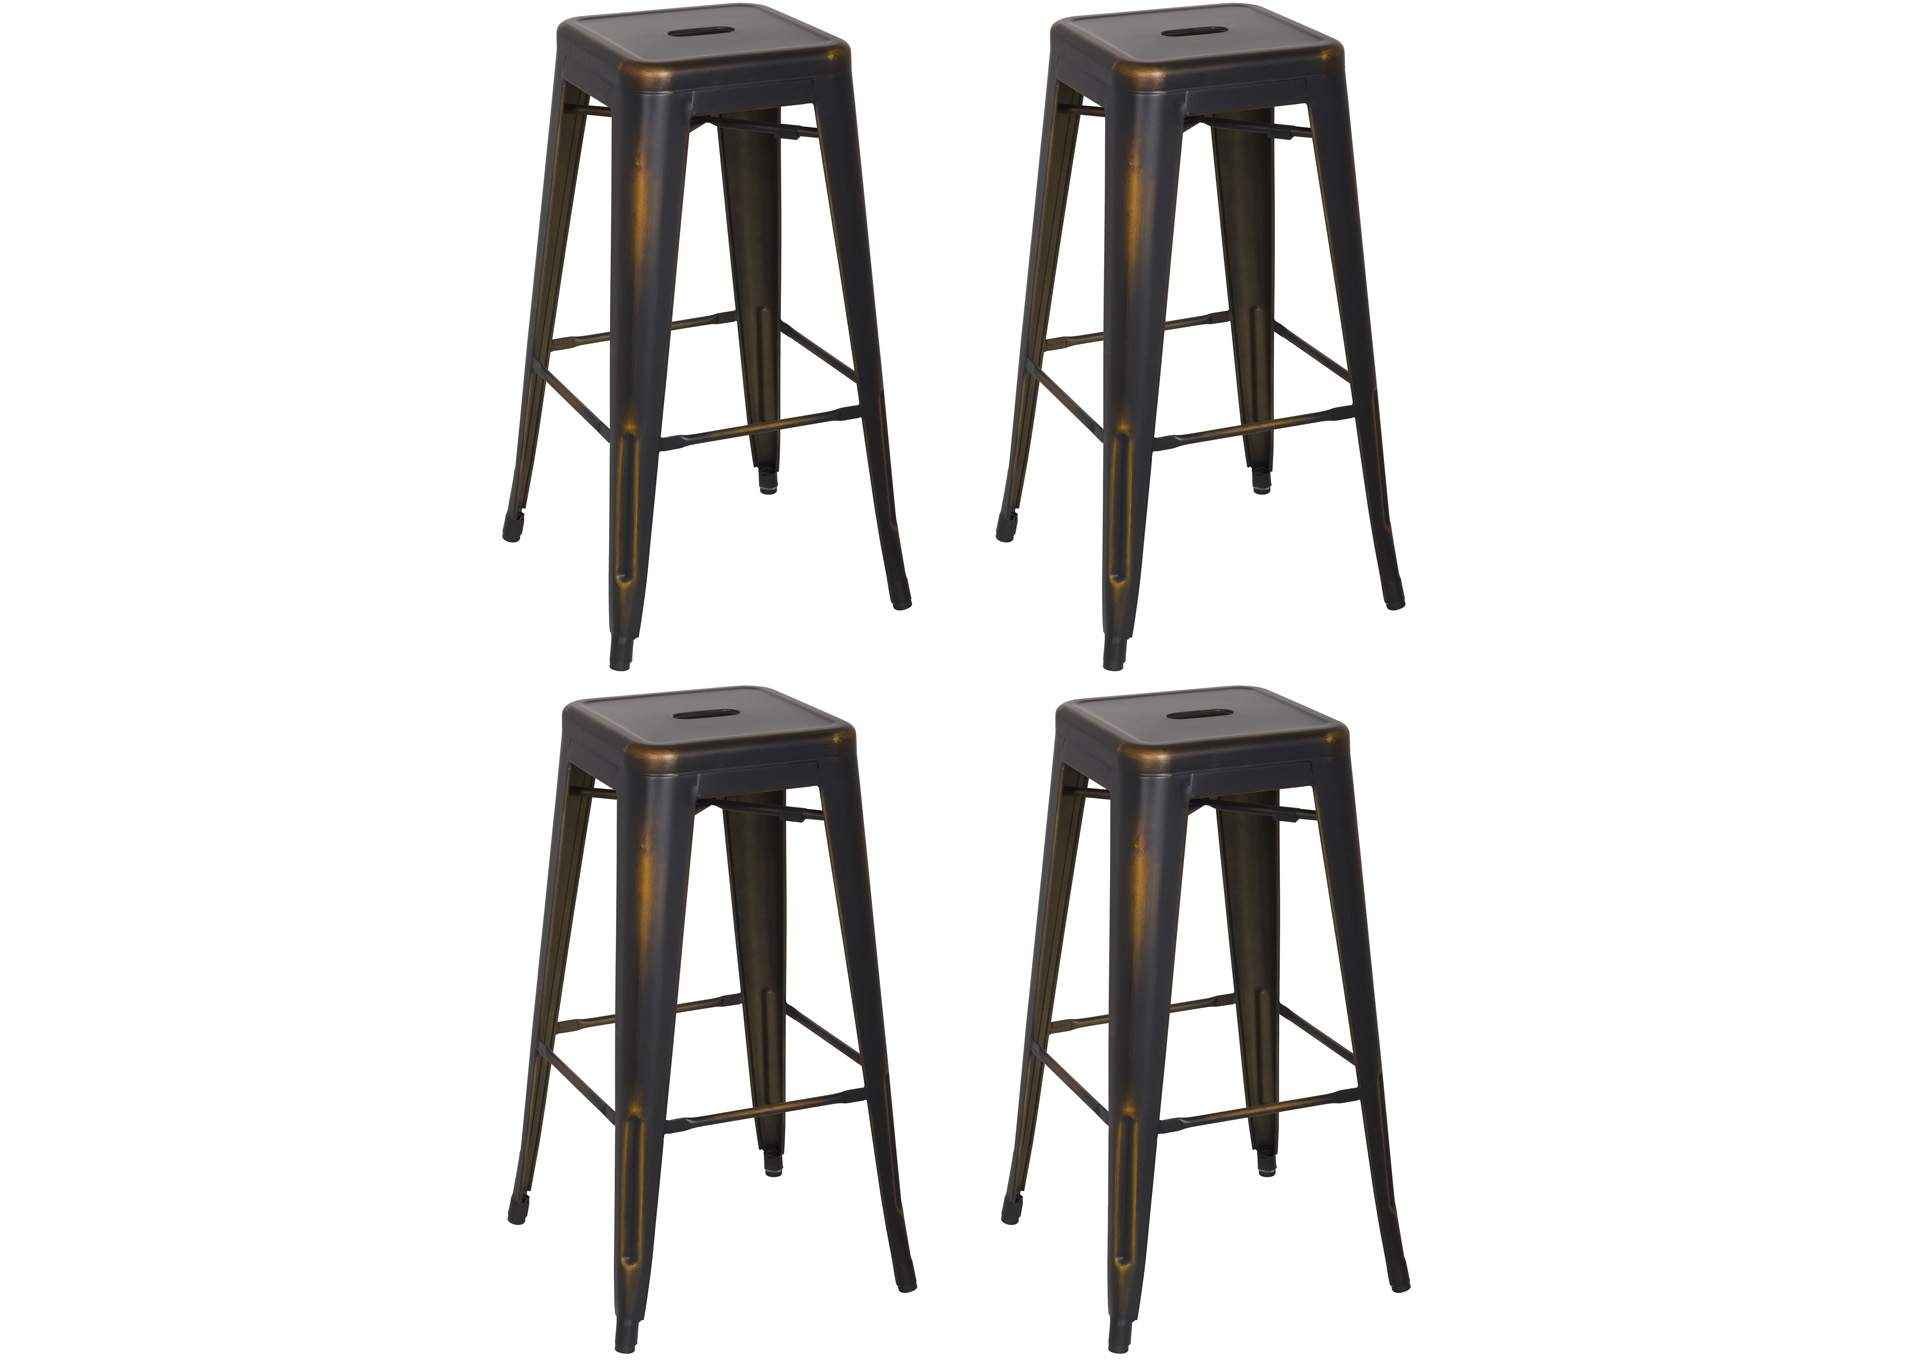 Antique Copper Vintage Galvanized Steel Bar Stool (Set of 4),Chintaly Imports